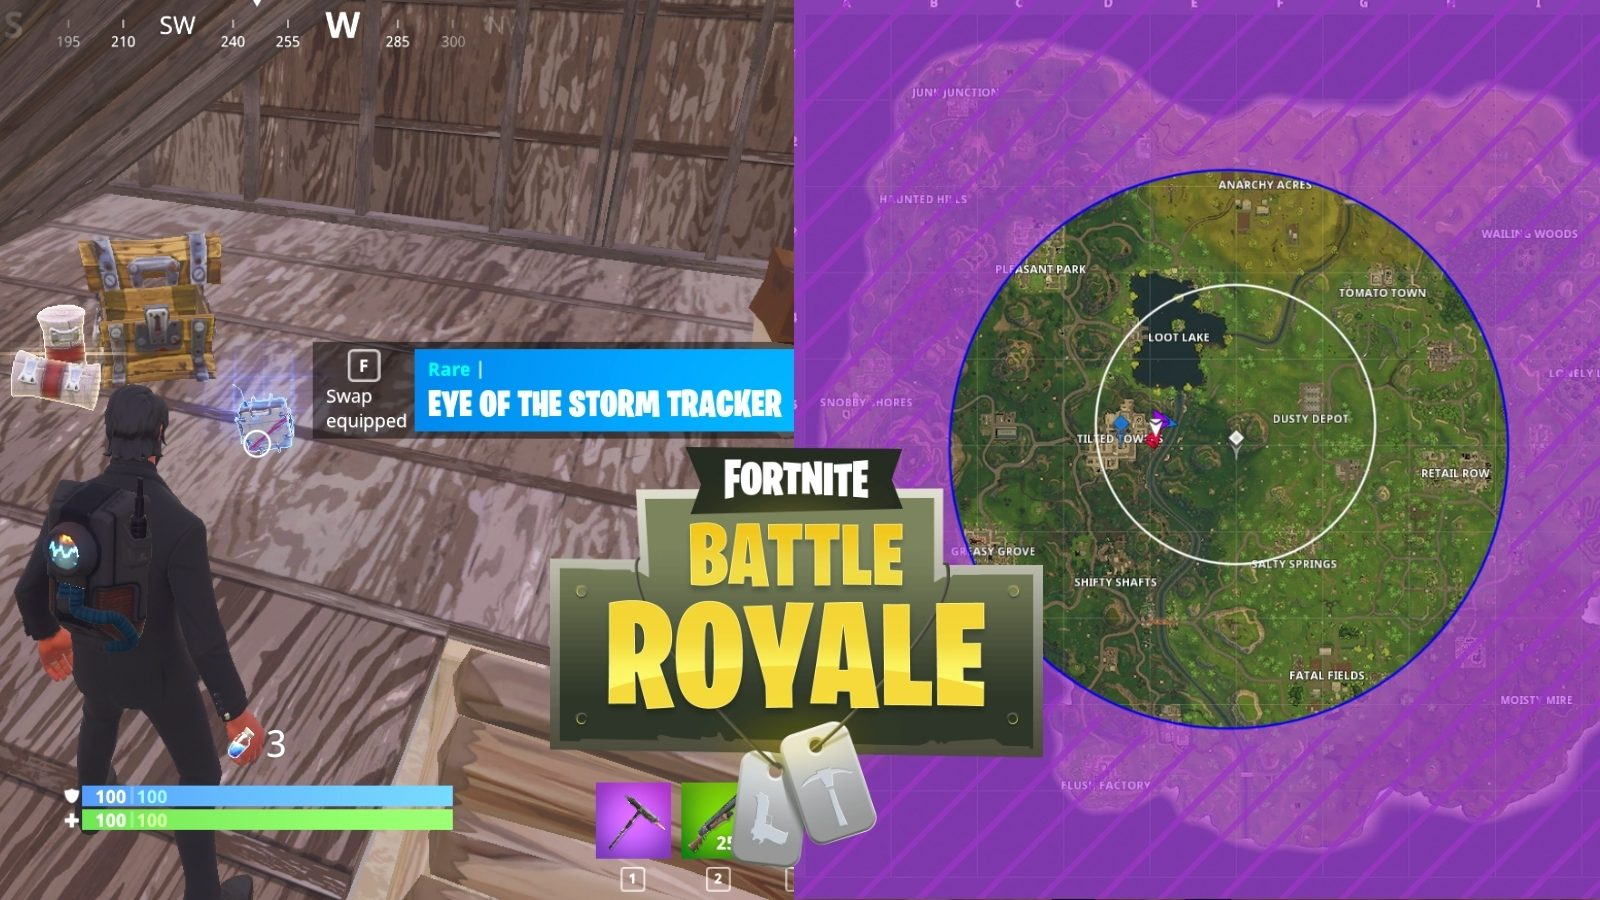 New Eye of The Storm Tracker Backpack Item Added to Fortnite 1600x900